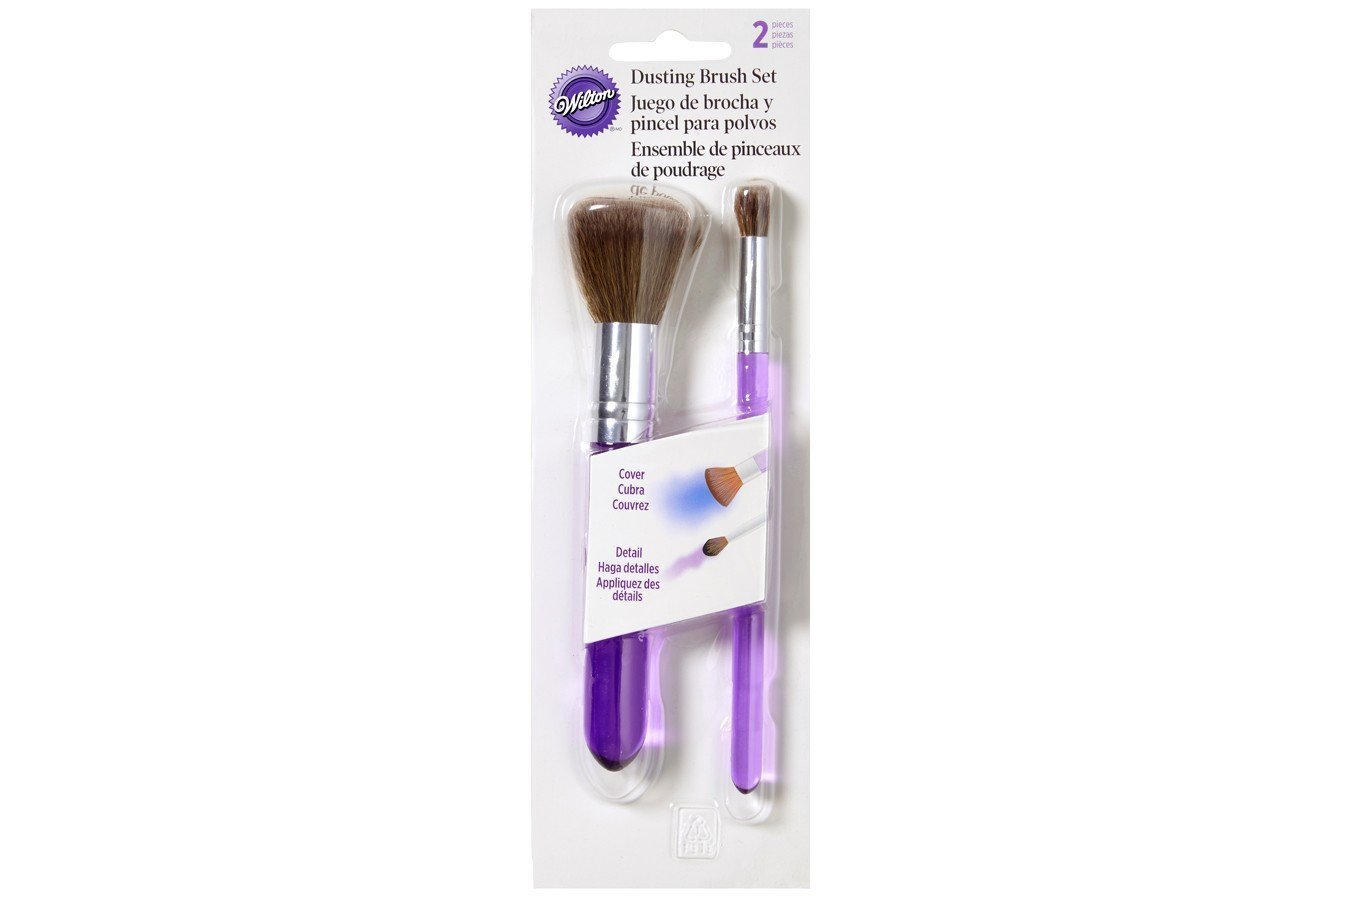 Wilton : Dusting Brush Set - 2 Pieces